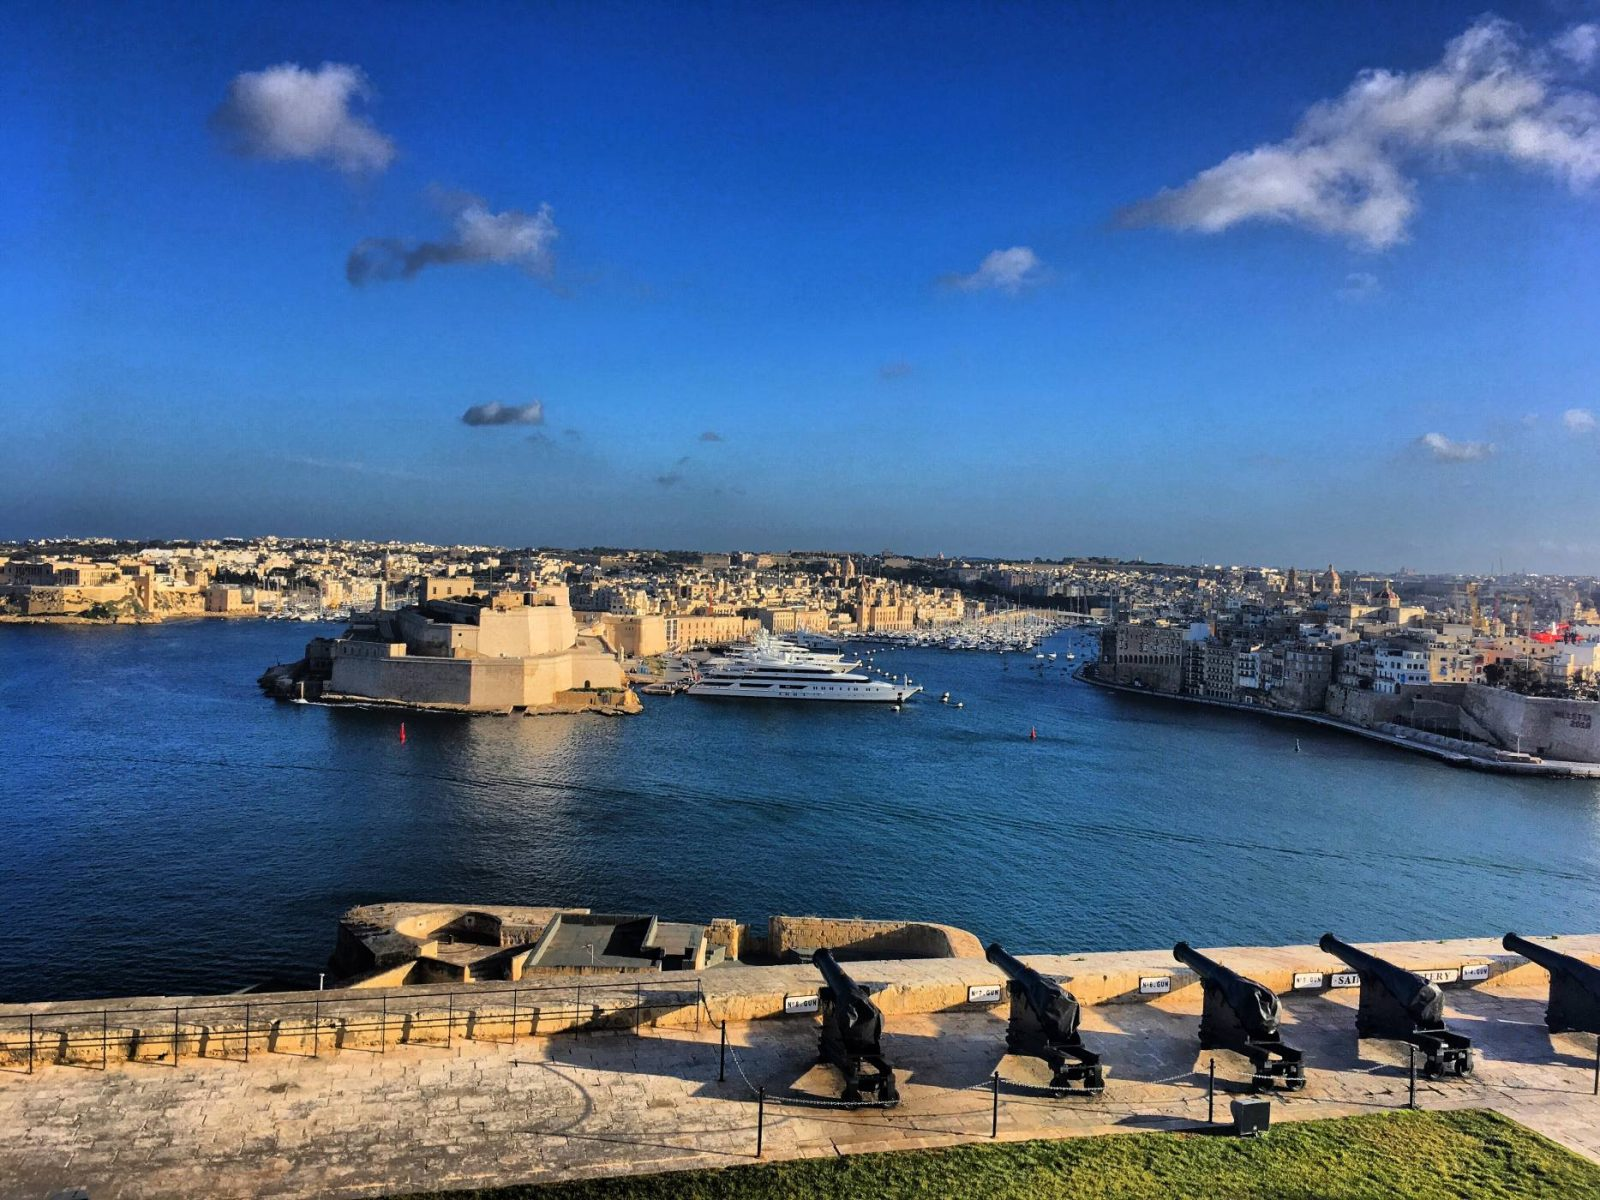 The scene just a few moments before the cannon is let off in Valletta, Malta